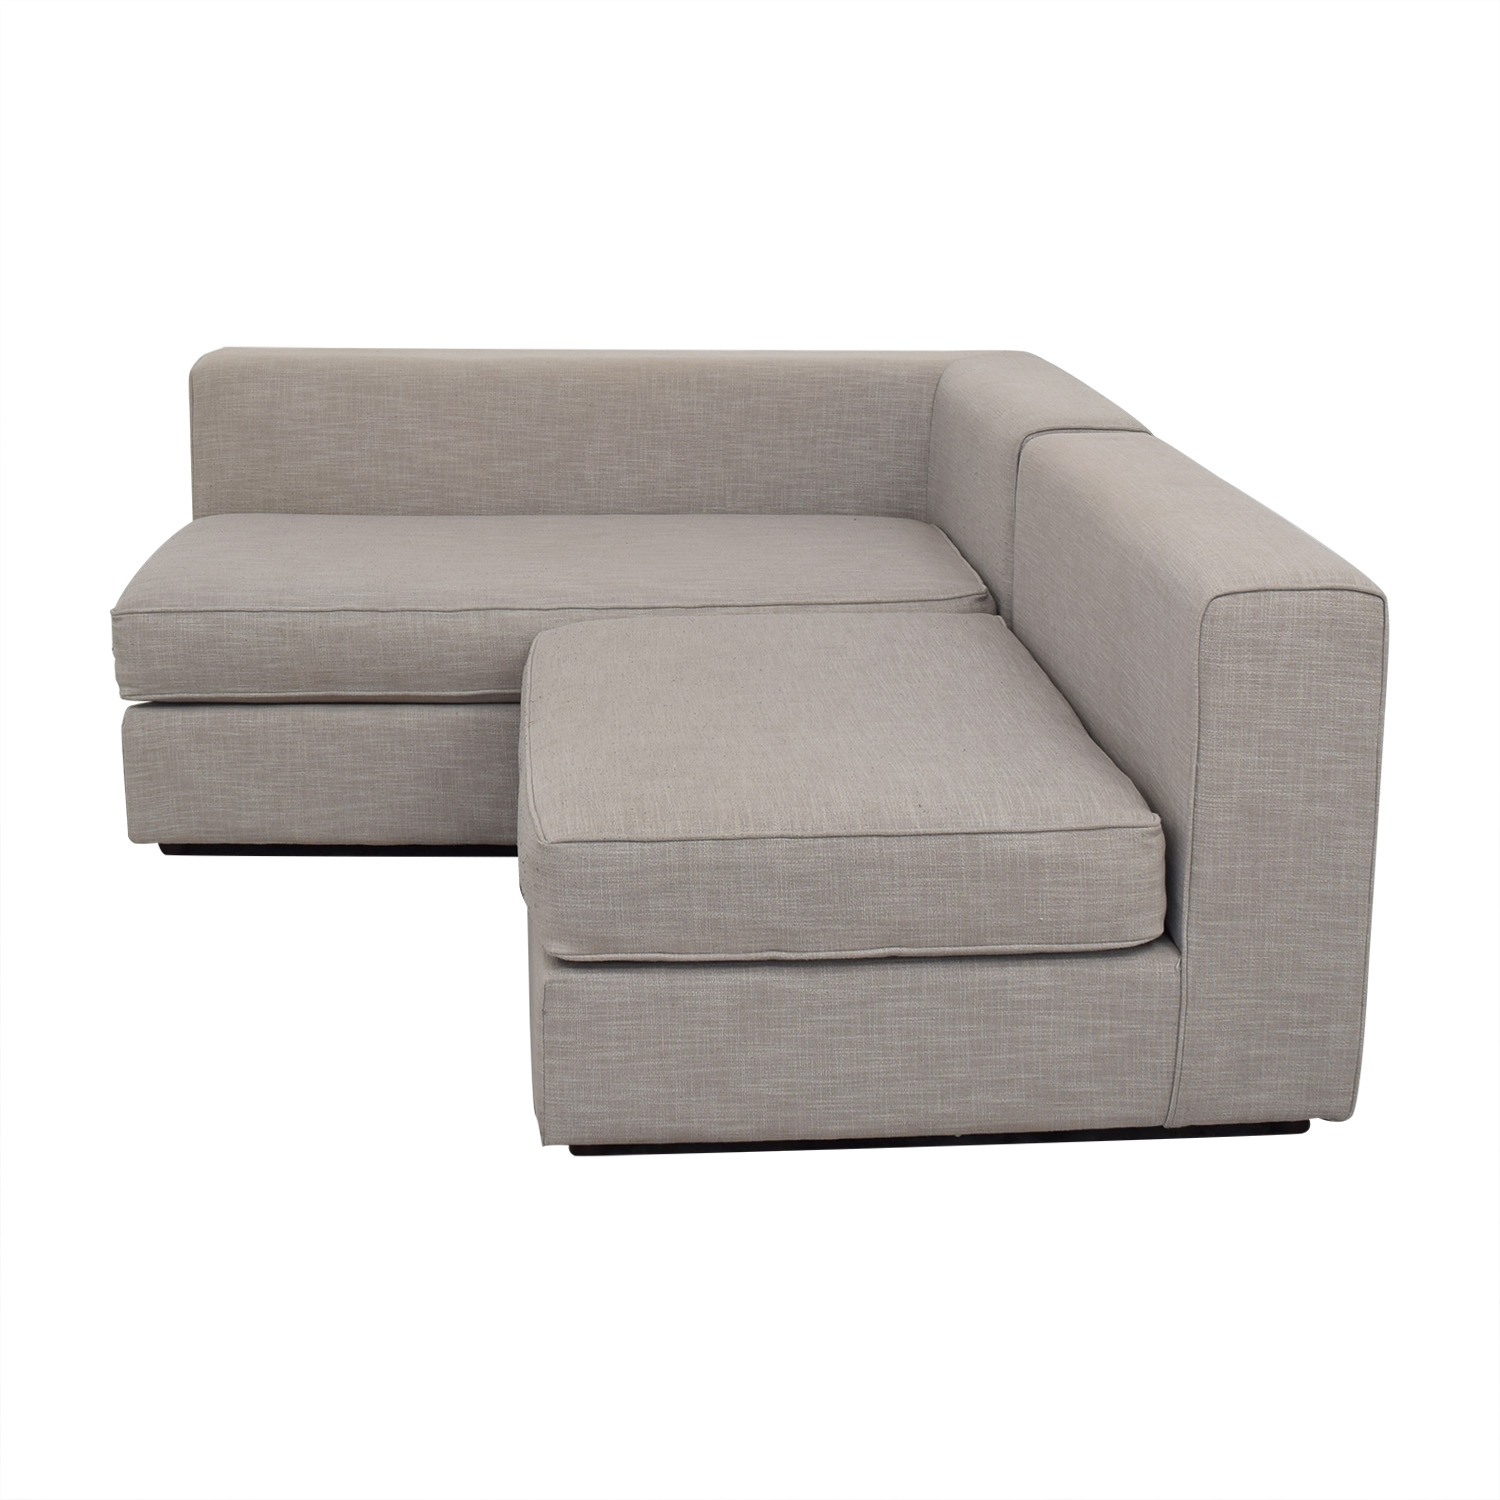 Groovy 57 Off West Elm West Elm Urban Sectional Sofa Sofas Pabps2019 Chair Design Images Pabps2019Com